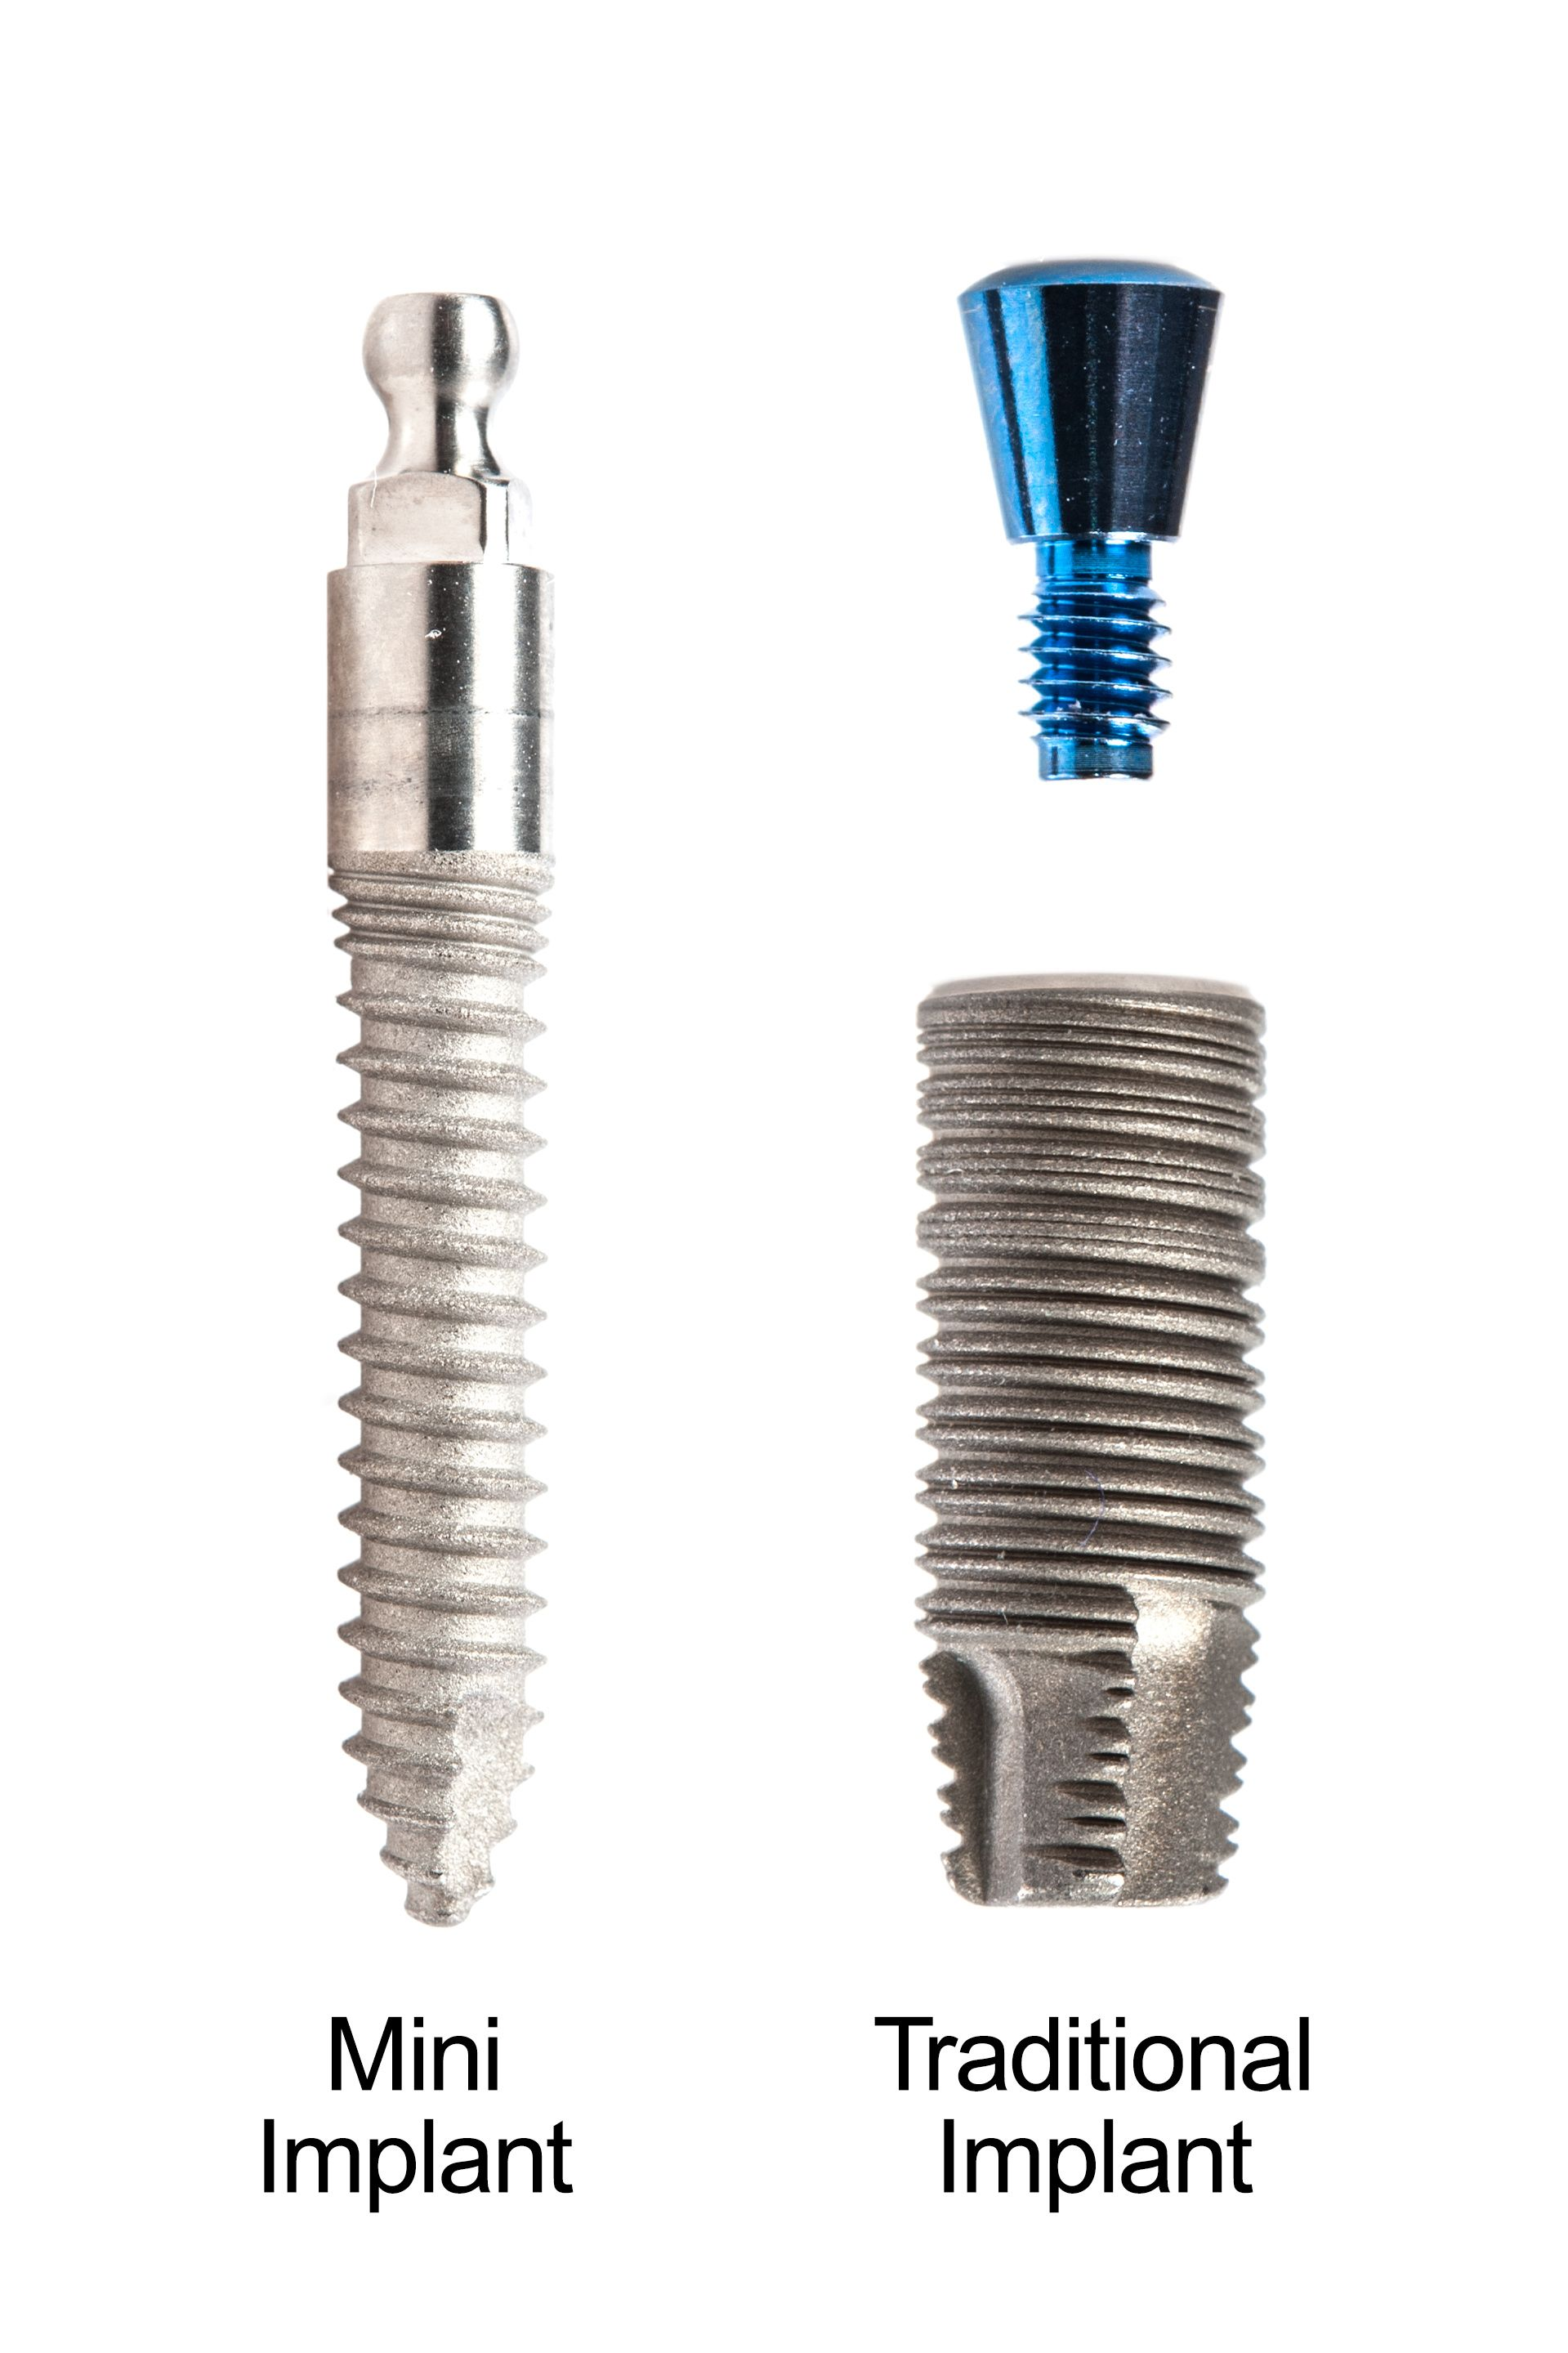 A mini dental implant and a traditional dental implant